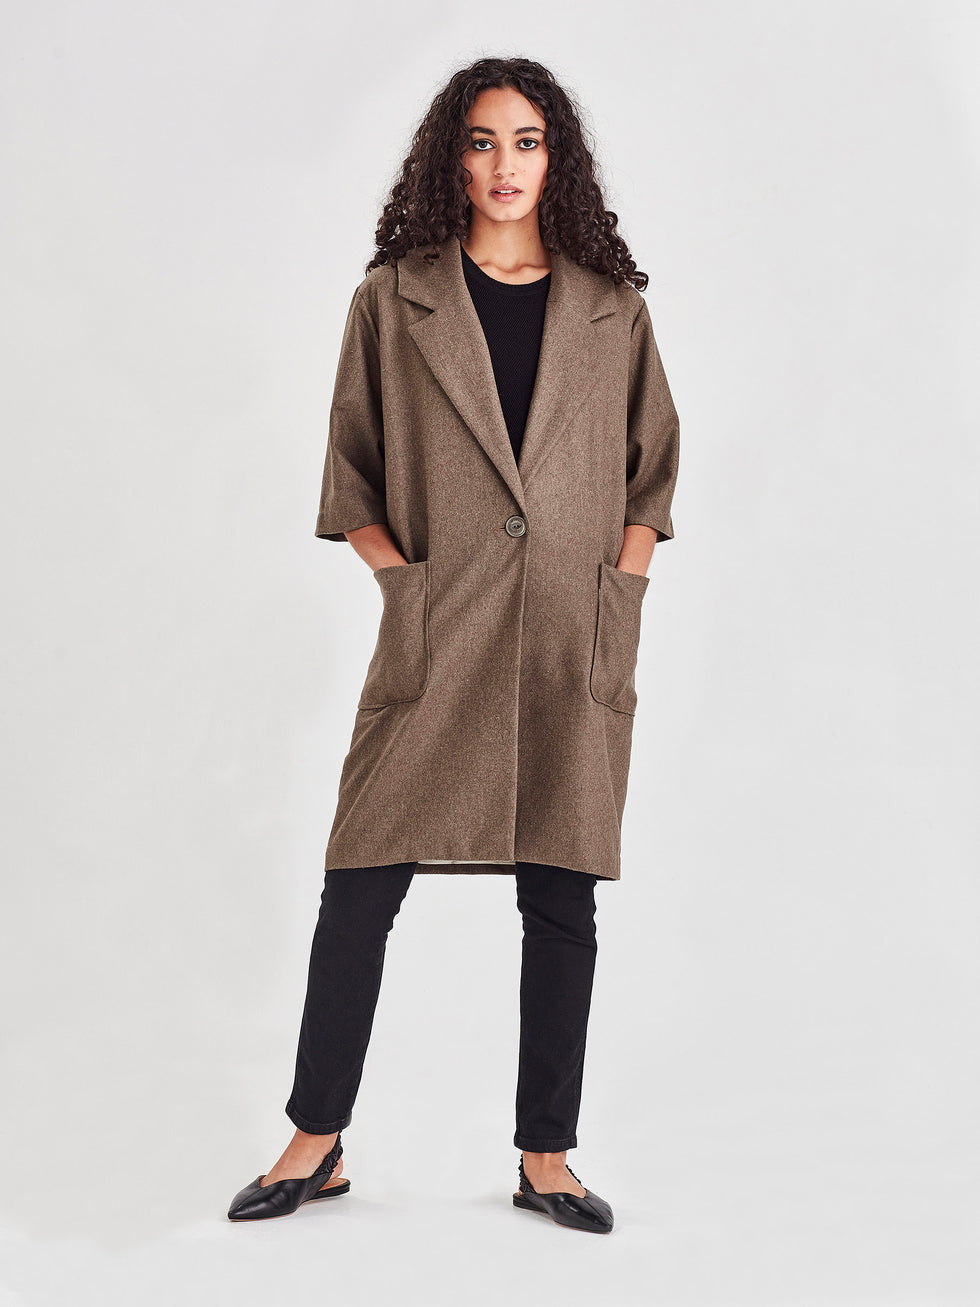 Duster Coat (Blanket Tweed) Moss